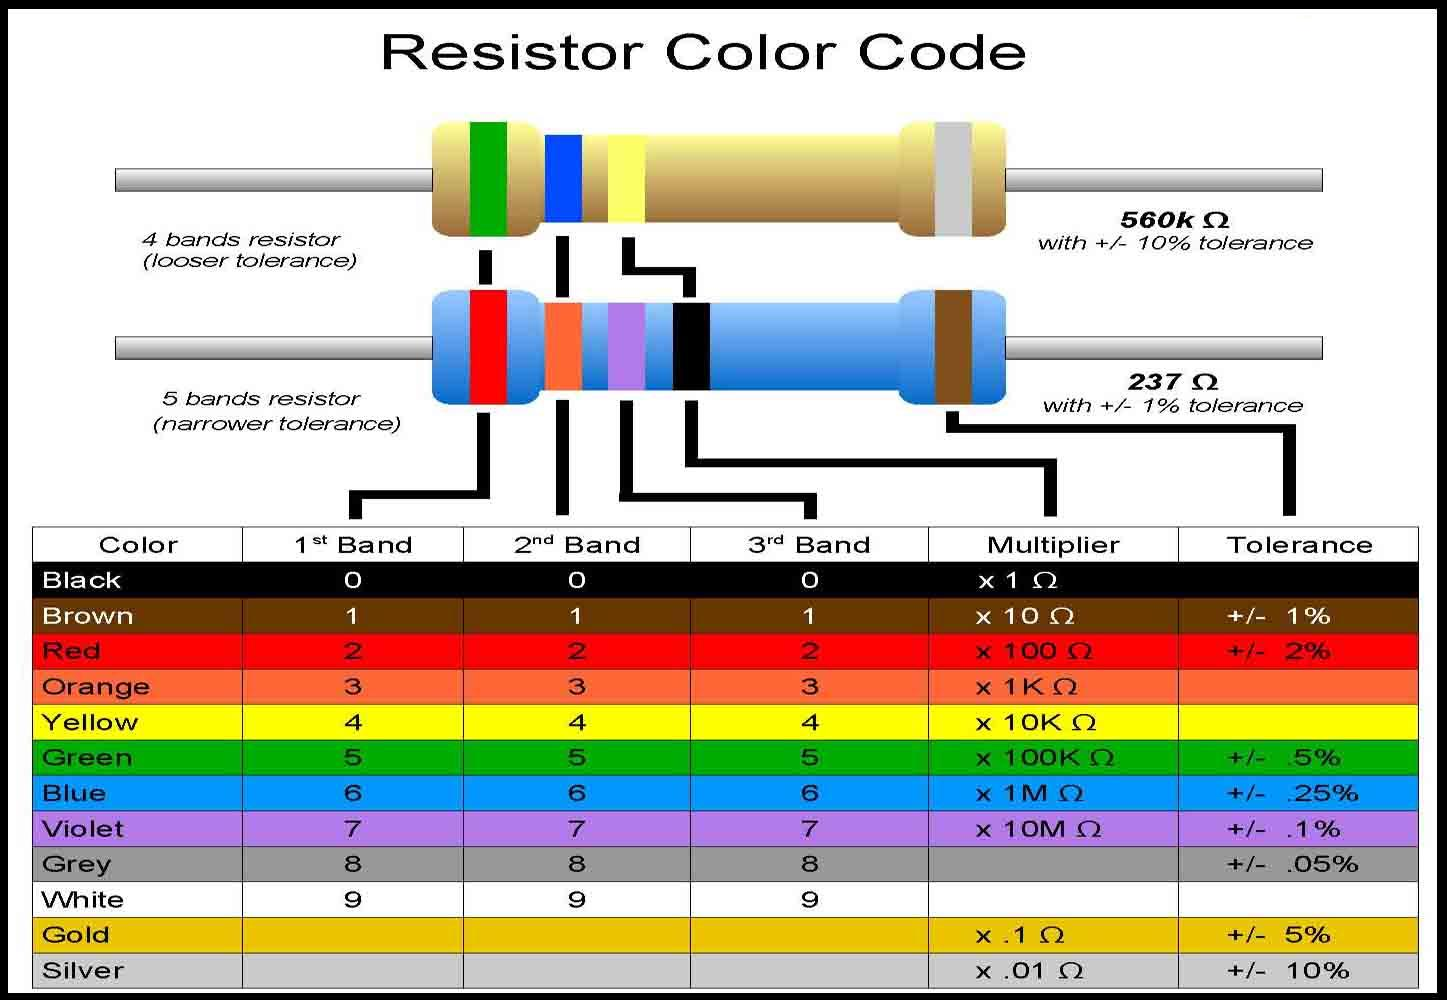 file resistor color codes jpg nearwiki rh nearbus net electronic resistor color code sequence Small Resistor Color Code